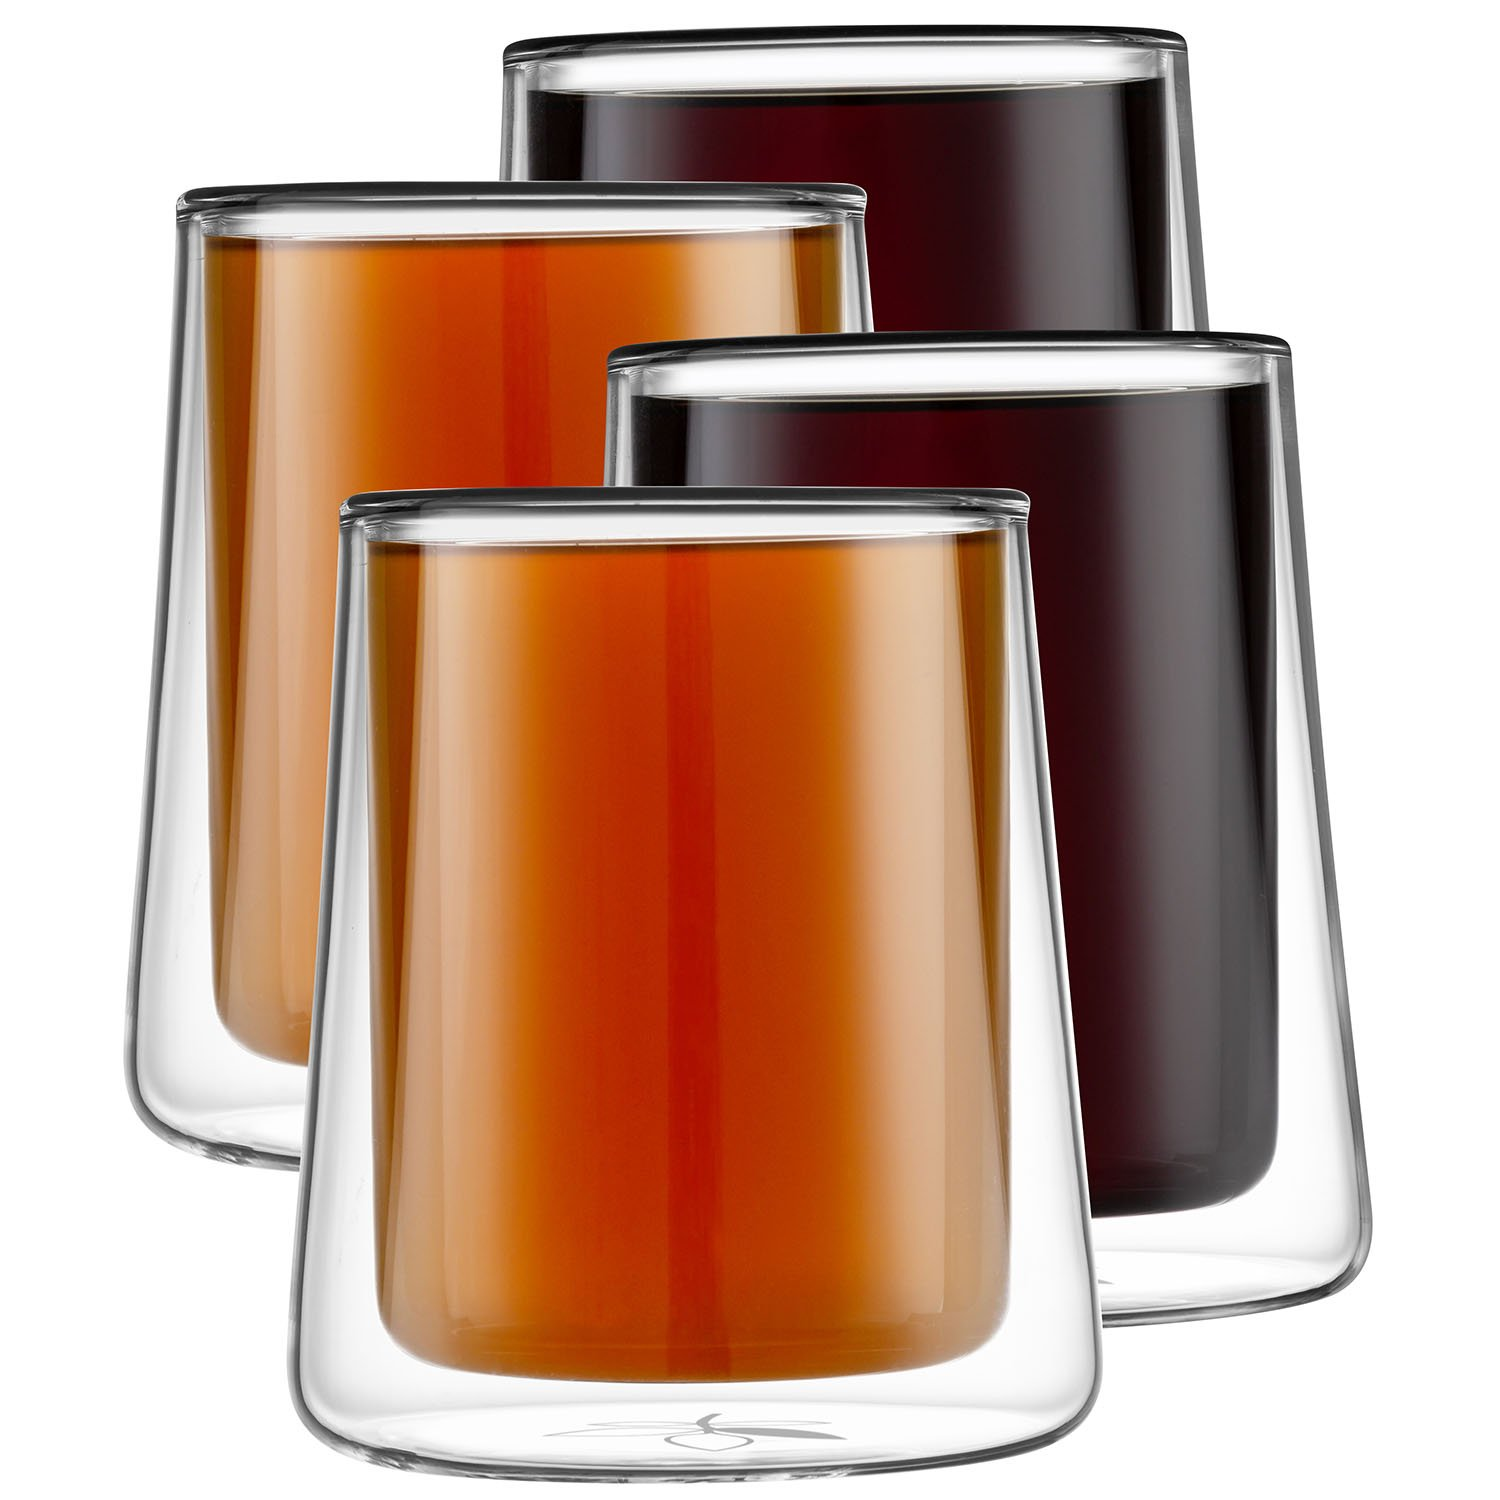 Double Walled Glass Cups - 12 Ounces, Set of 4 Clear Coffee Mugs - Double Wall Coffee Mugs for Coffee, Tea, Latte, and Cappuccino